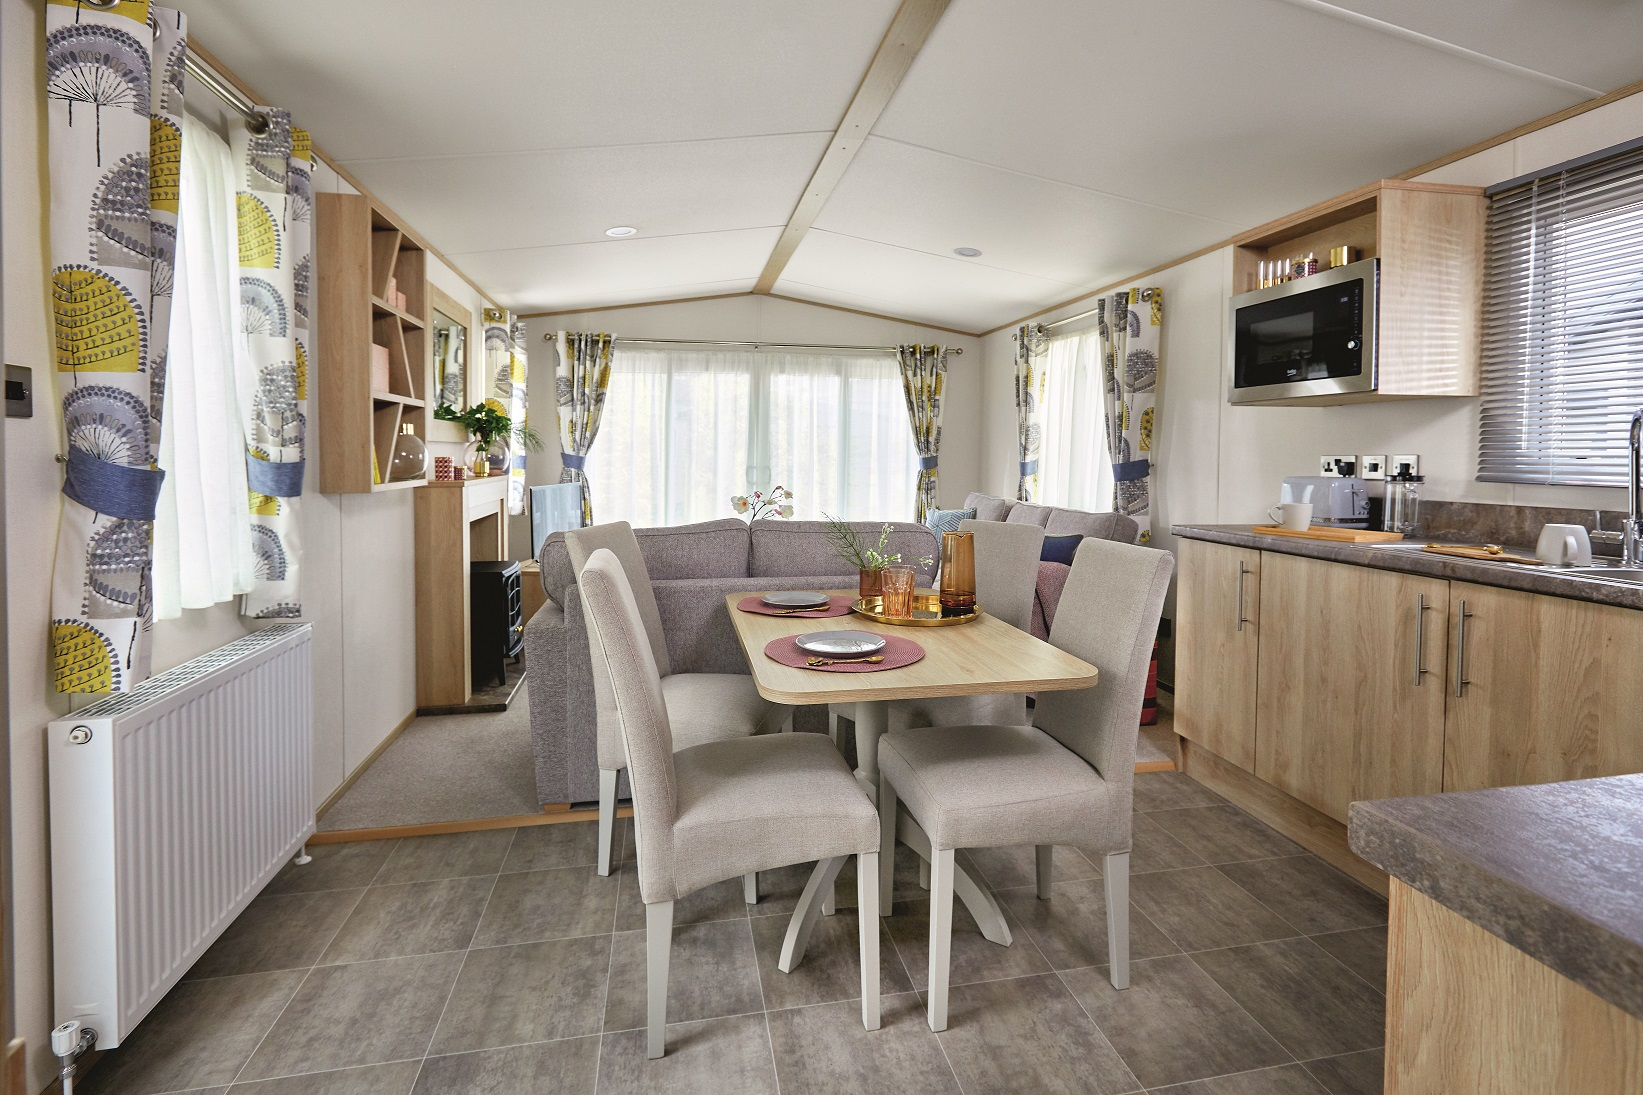 ABI Beverley: New Static Caravans and Holiday Homes for Sale, Langley Moor, Durham Large Image 1